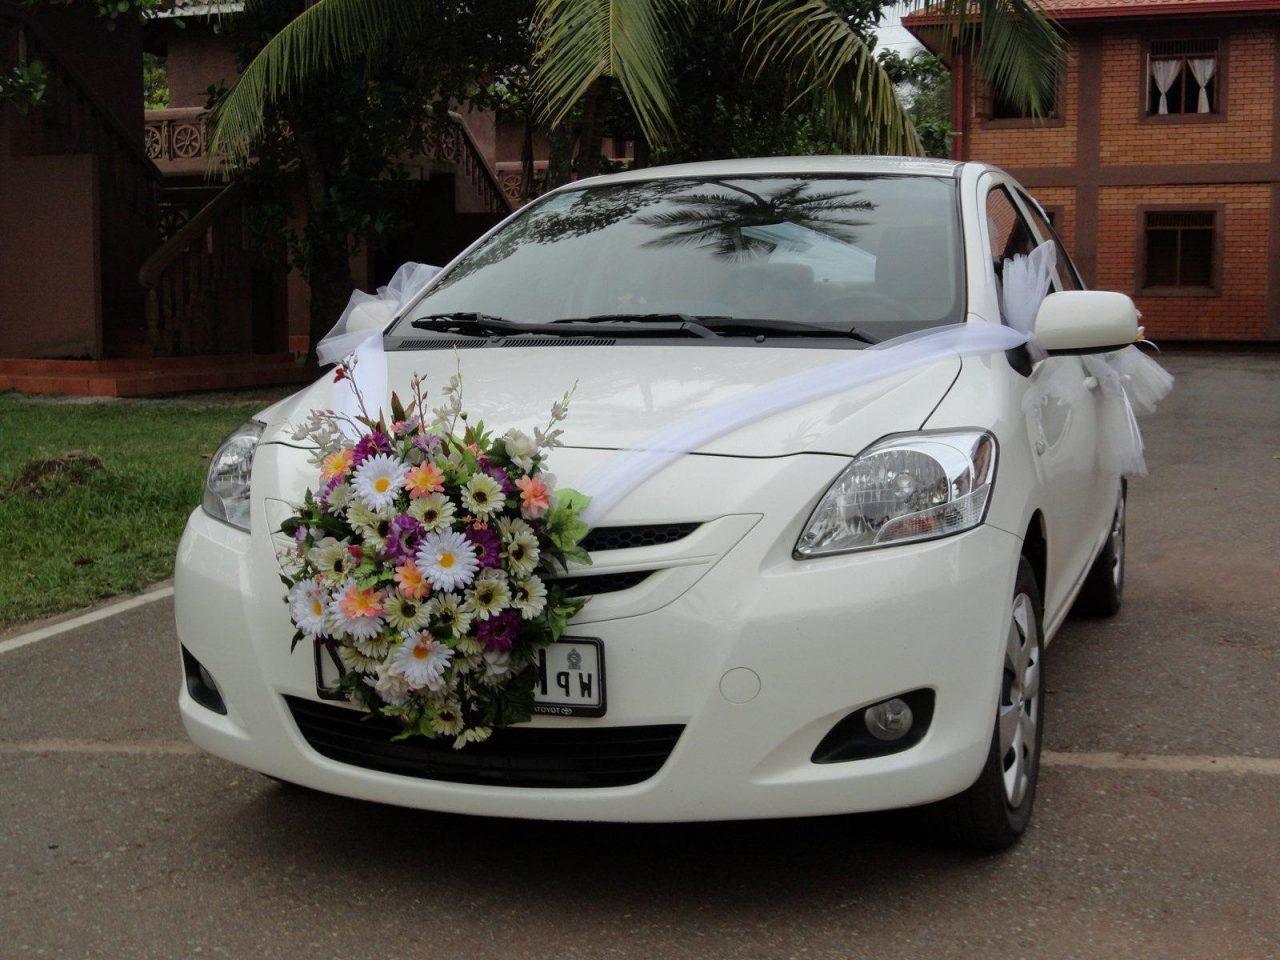 Weddings on a budget ideas and tips india 39 s wedding for Automobile decoration